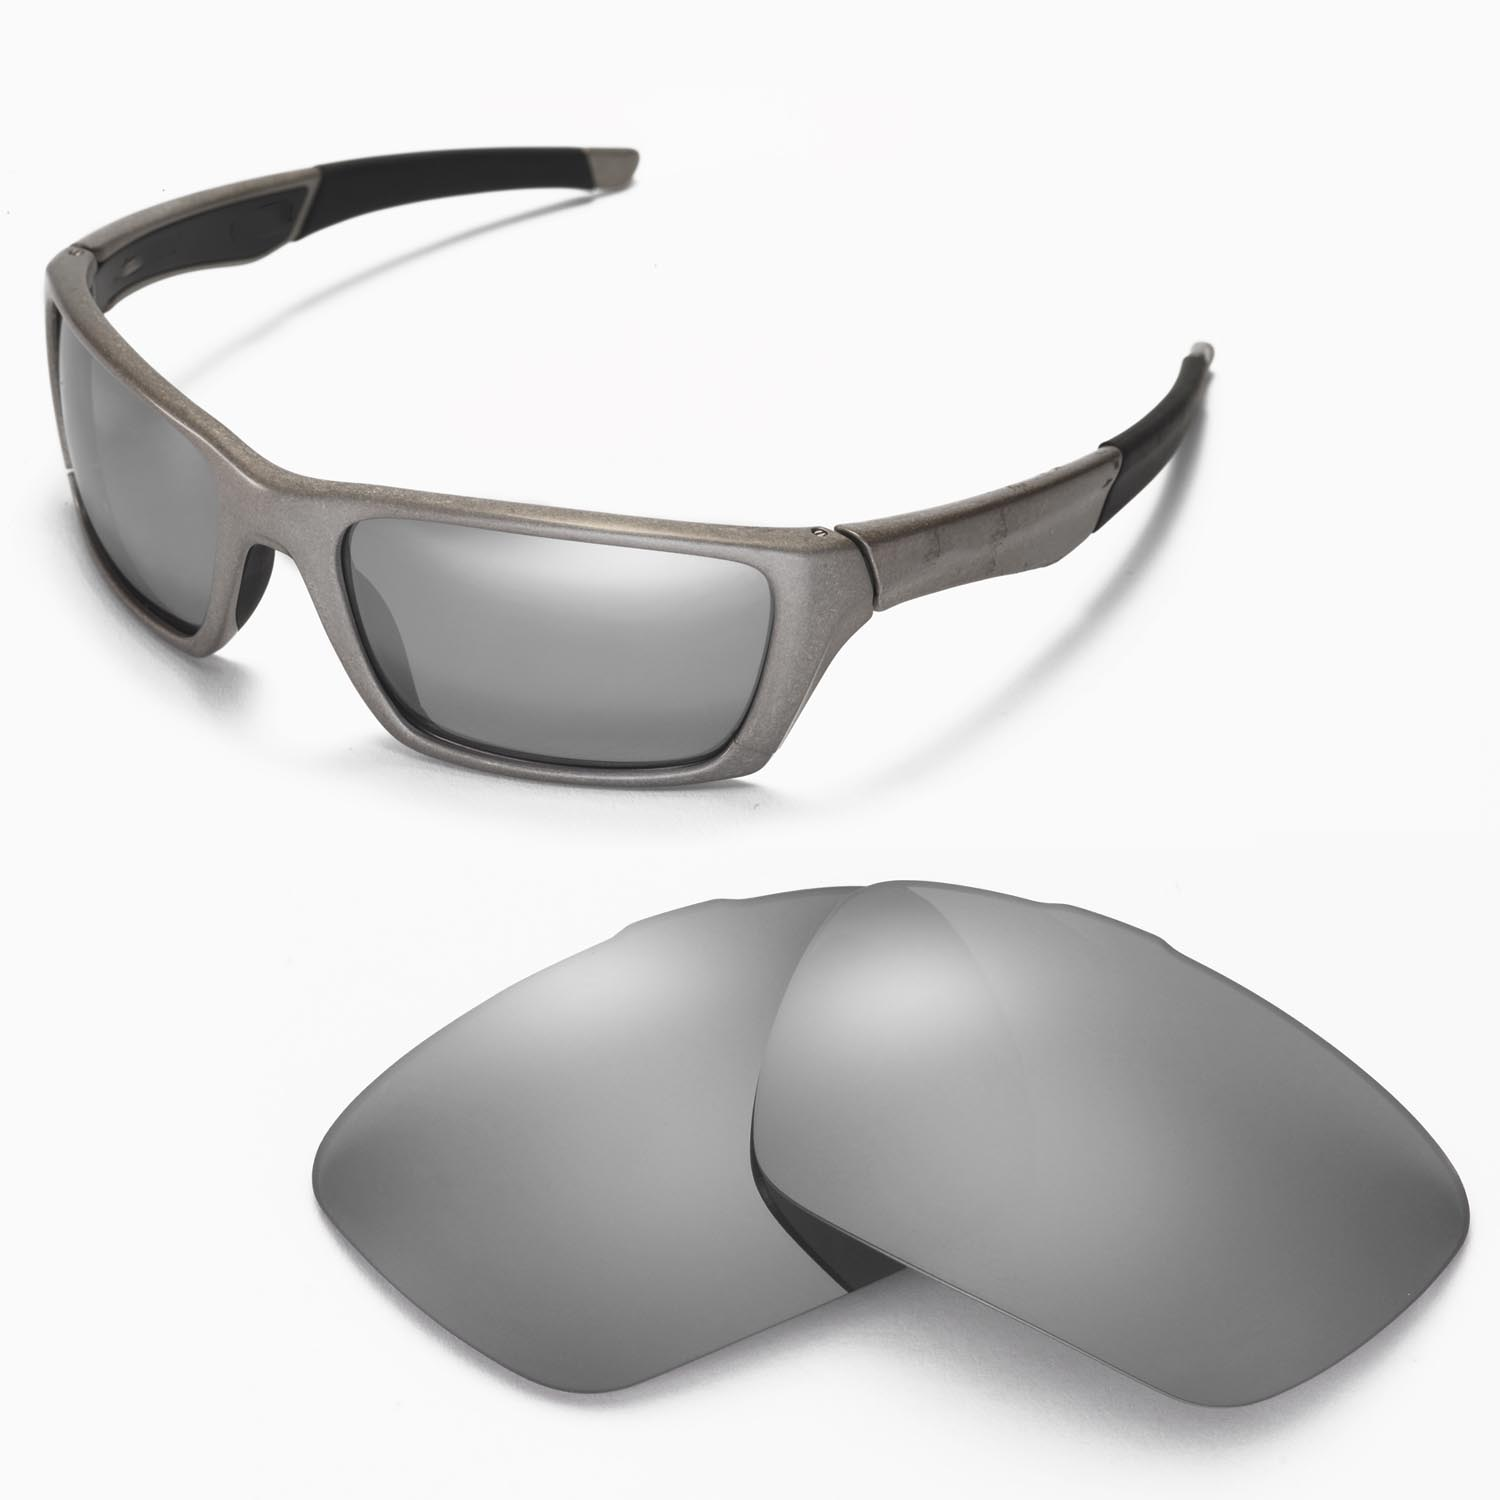 4082bda07a5 Details about New Walleva Polarized Titanium Replacement Lenses For Oakley  Jury Sunglasses